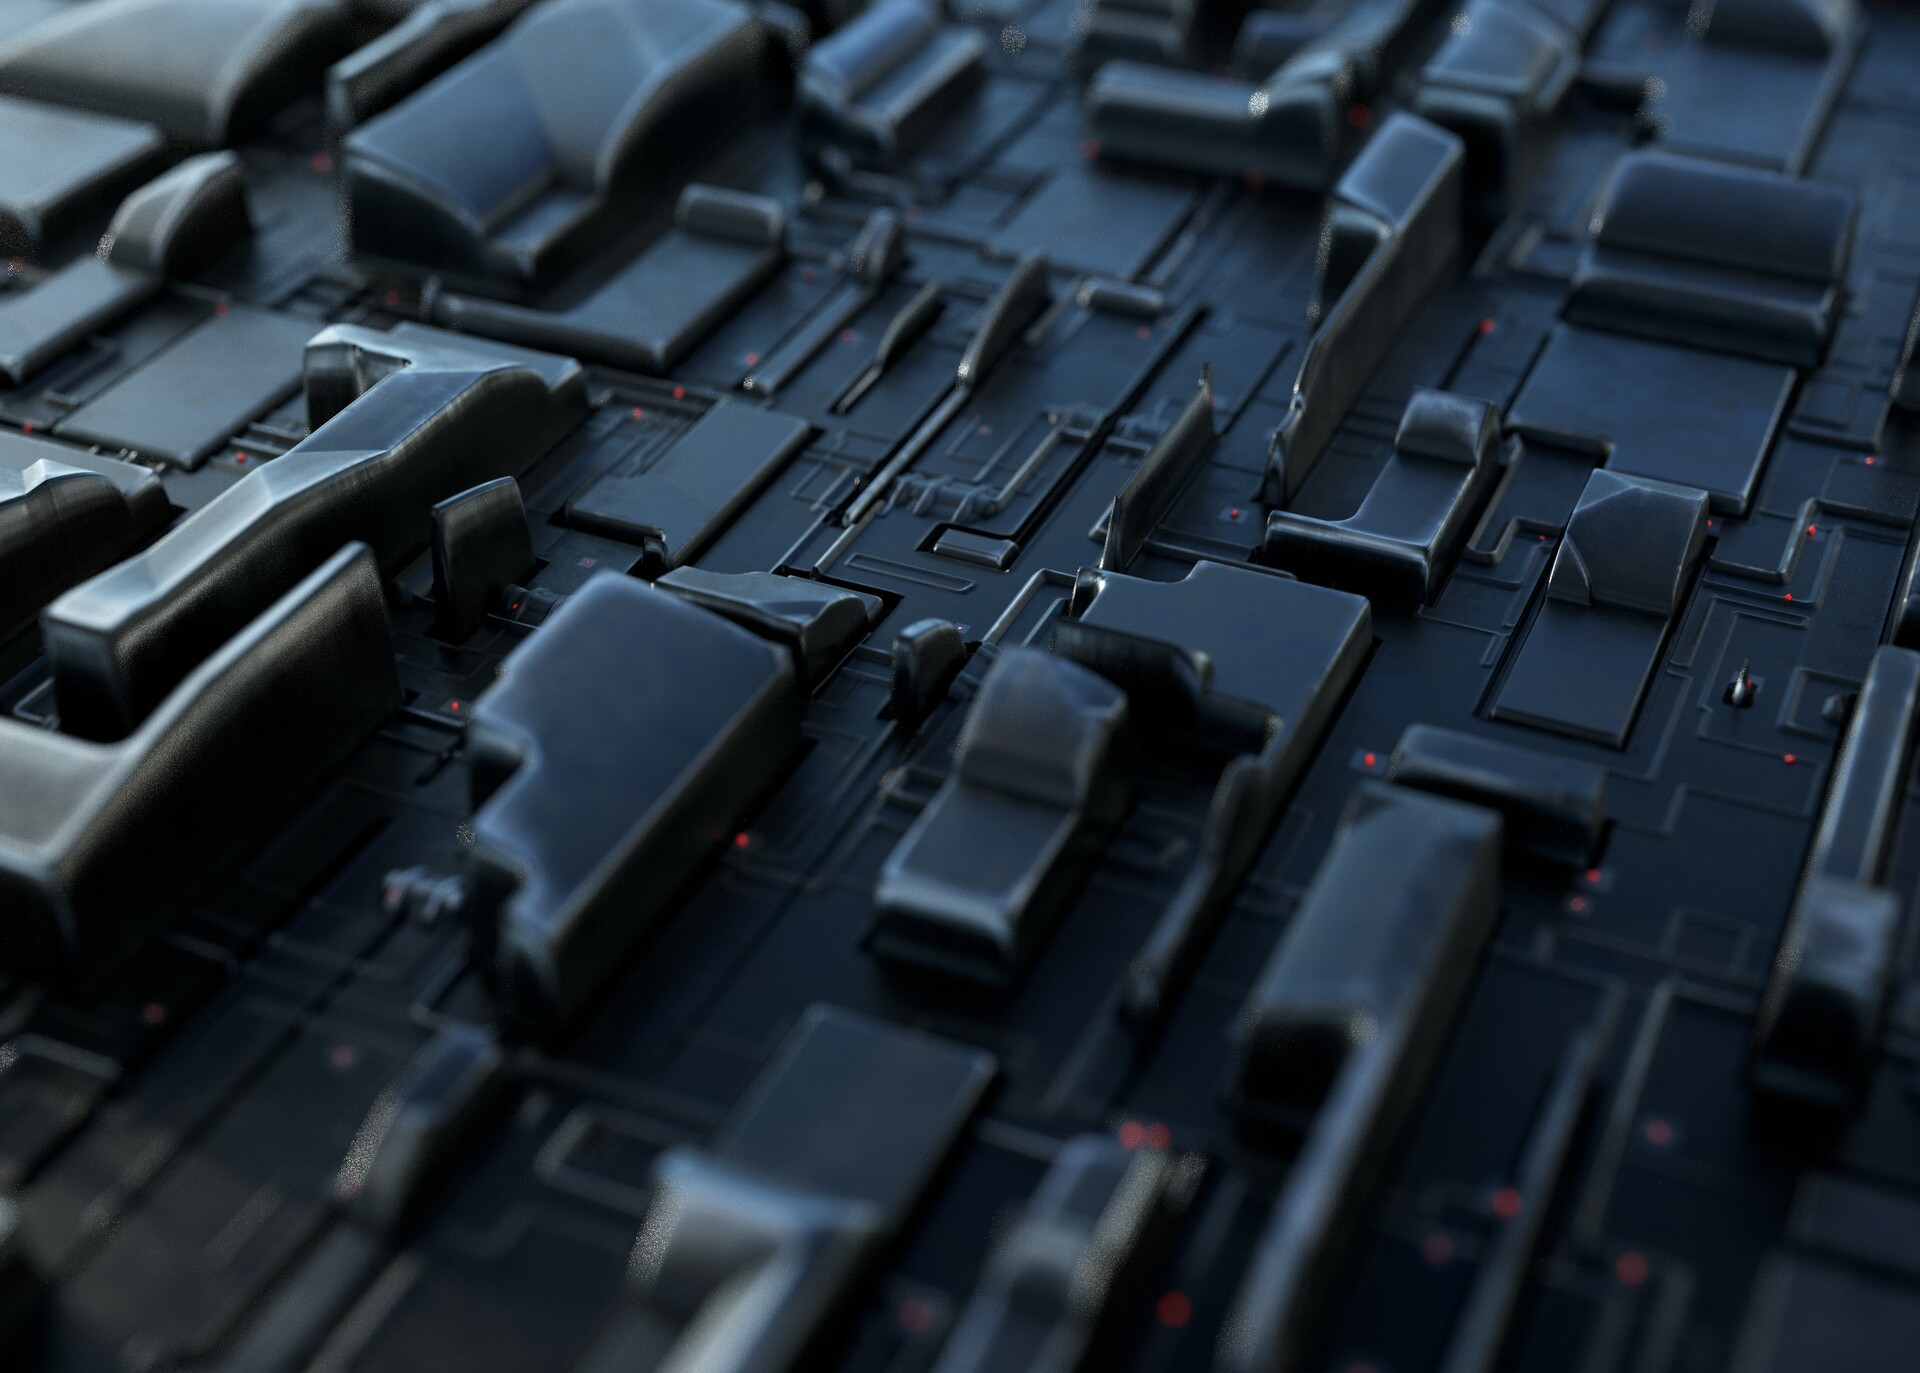 Close Up (iRay in Substance Designer)